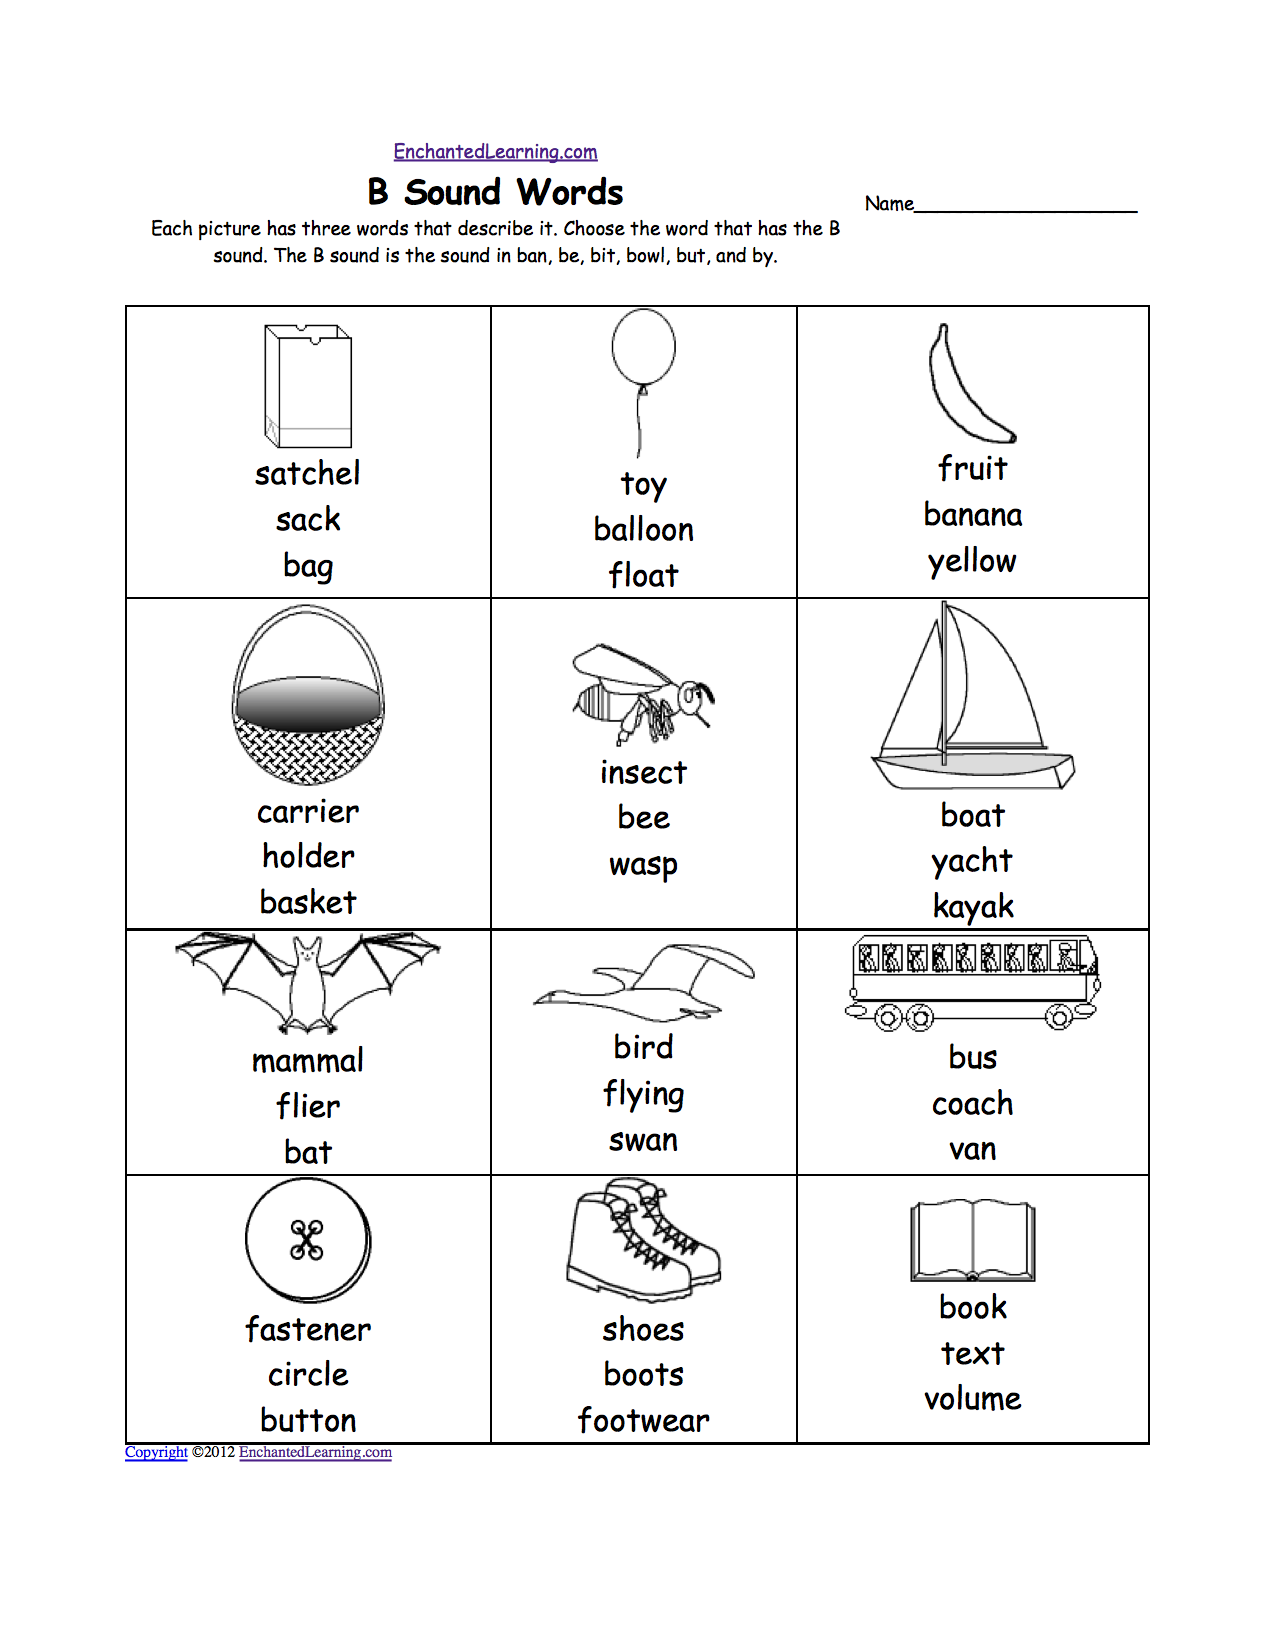 Proatmealus  Terrific Phonics Worksheets Multiple Choice Worksheets To Print  With Remarkable Quotbquot Sound Phonics Worksheet Multiple Choice Each Picture Has Three Words That Describe It Choose The Word That Has A Quotbquot Sound The Quotbquot Sound Is The Sound  With Charming Converting Worksheets Also Worksheets For Teenagers In Addition Preschool Letter F Worksheets And Capital Letters Worksheets As Well As Worksheets On Factoring Additionally Reading Comprehension Worksheets Free Printable From Enchantedlearningcom With Proatmealus  Remarkable Phonics Worksheets Multiple Choice Worksheets To Print  With Charming Quotbquot Sound Phonics Worksheet Multiple Choice Each Picture Has Three Words That Describe It Choose The Word That Has A Quotbquot Sound The Quotbquot Sound Is The Sound  And Terrific Converting Worksheets Also Worksheets For Teenagers In Addition Preschool Letter F Worksheets From Enchantedlearningcom